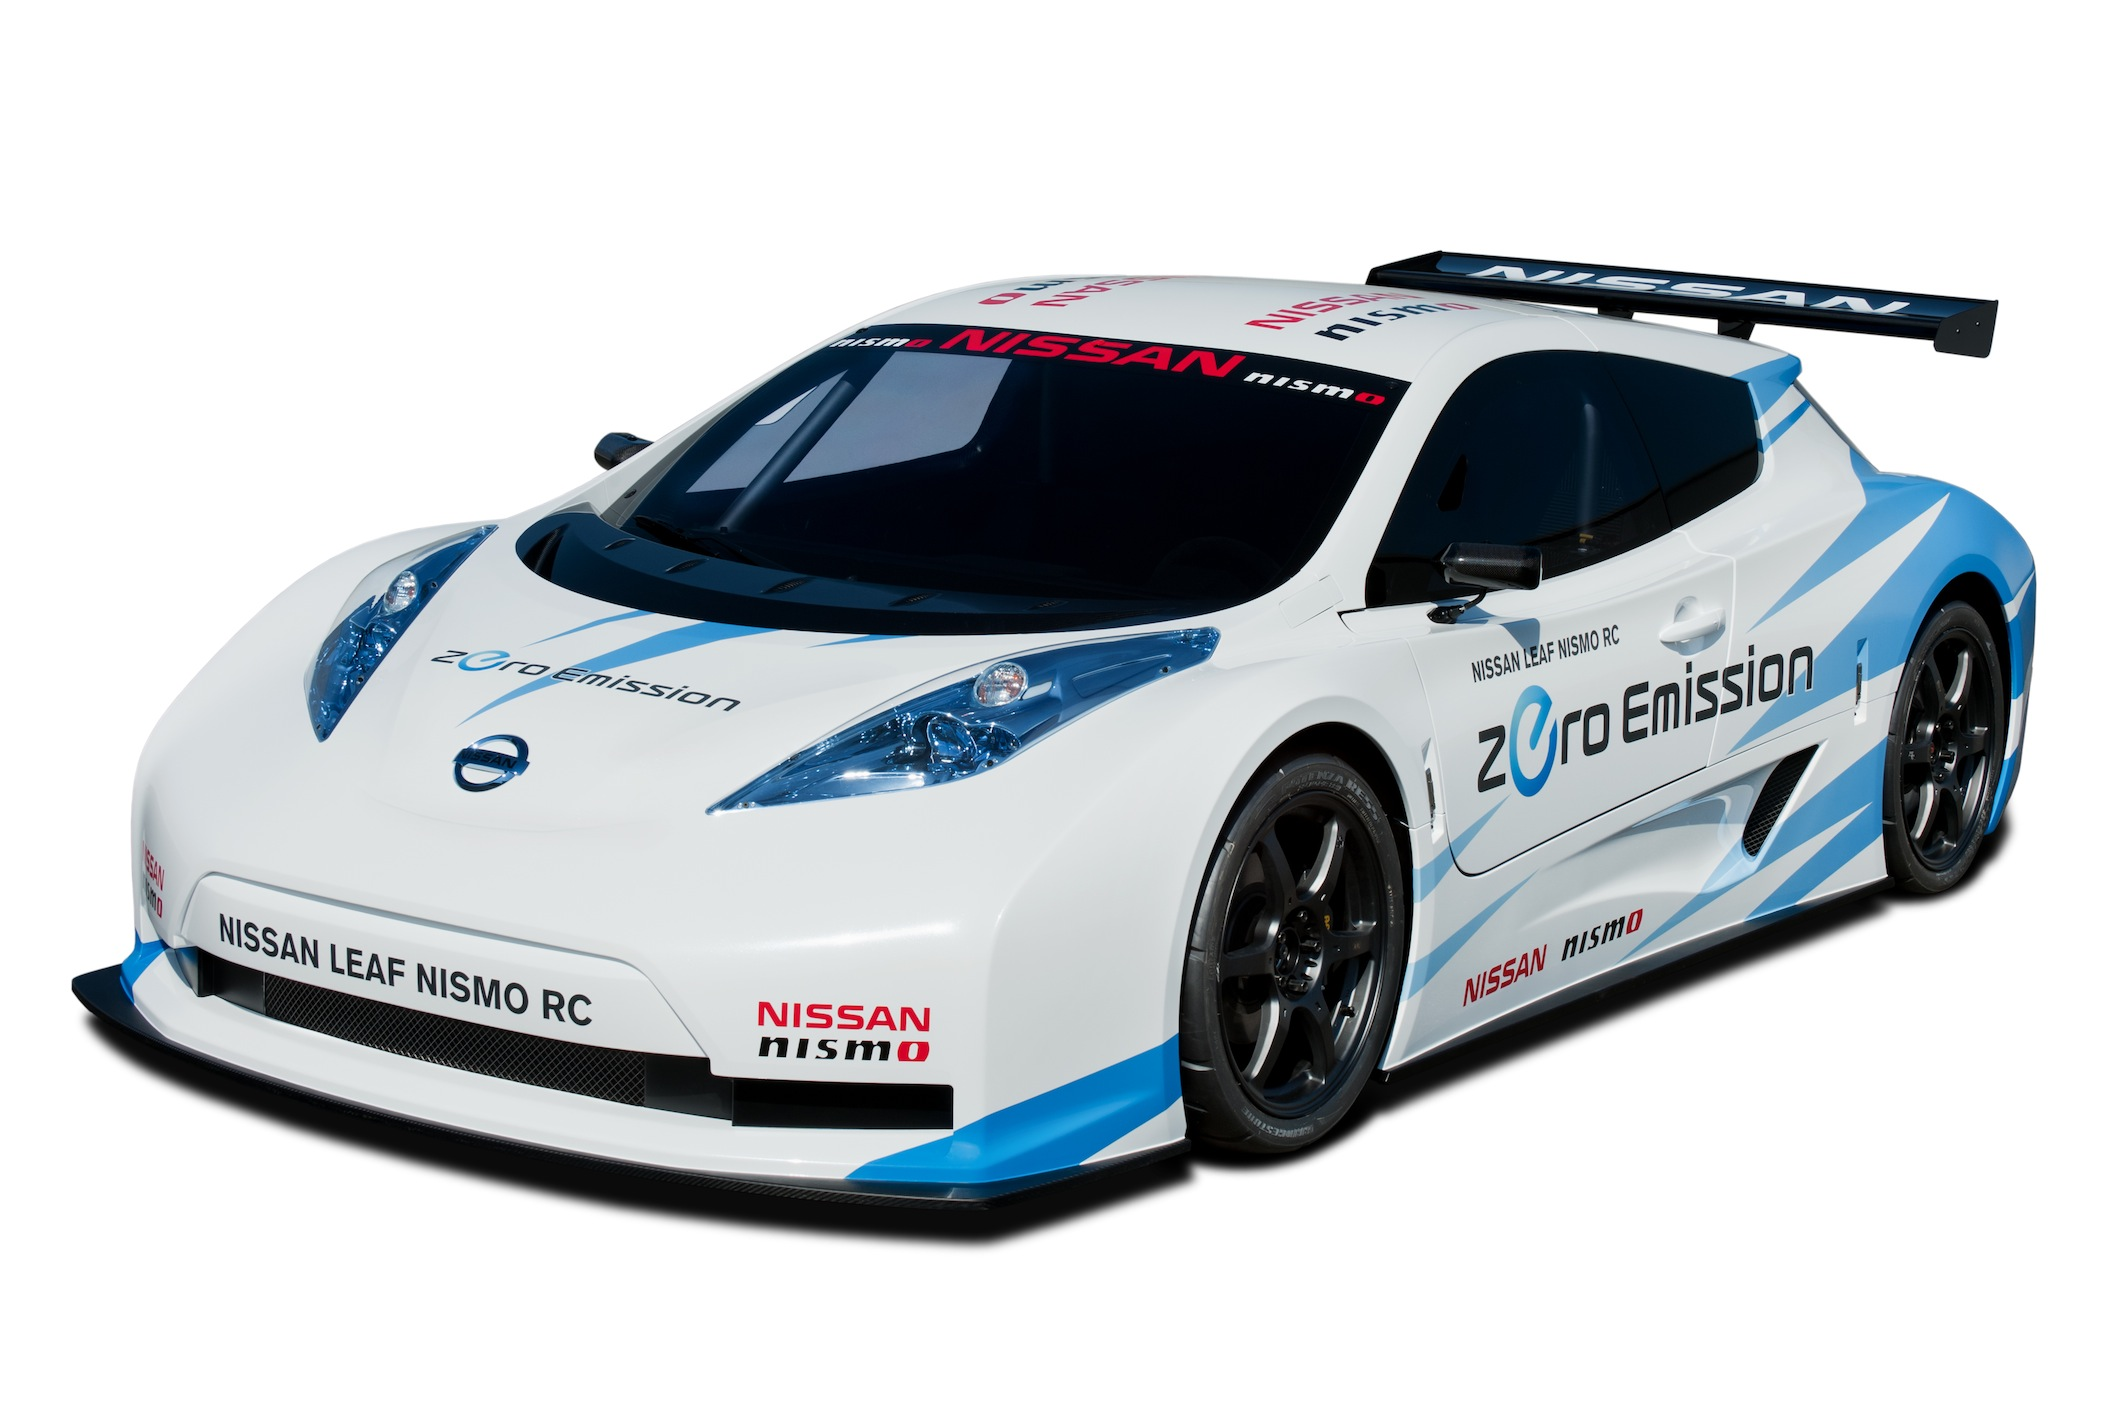 Nissan Leaf Nismo Rc To Tear Up The Track At 24 Hours Of Le Mans